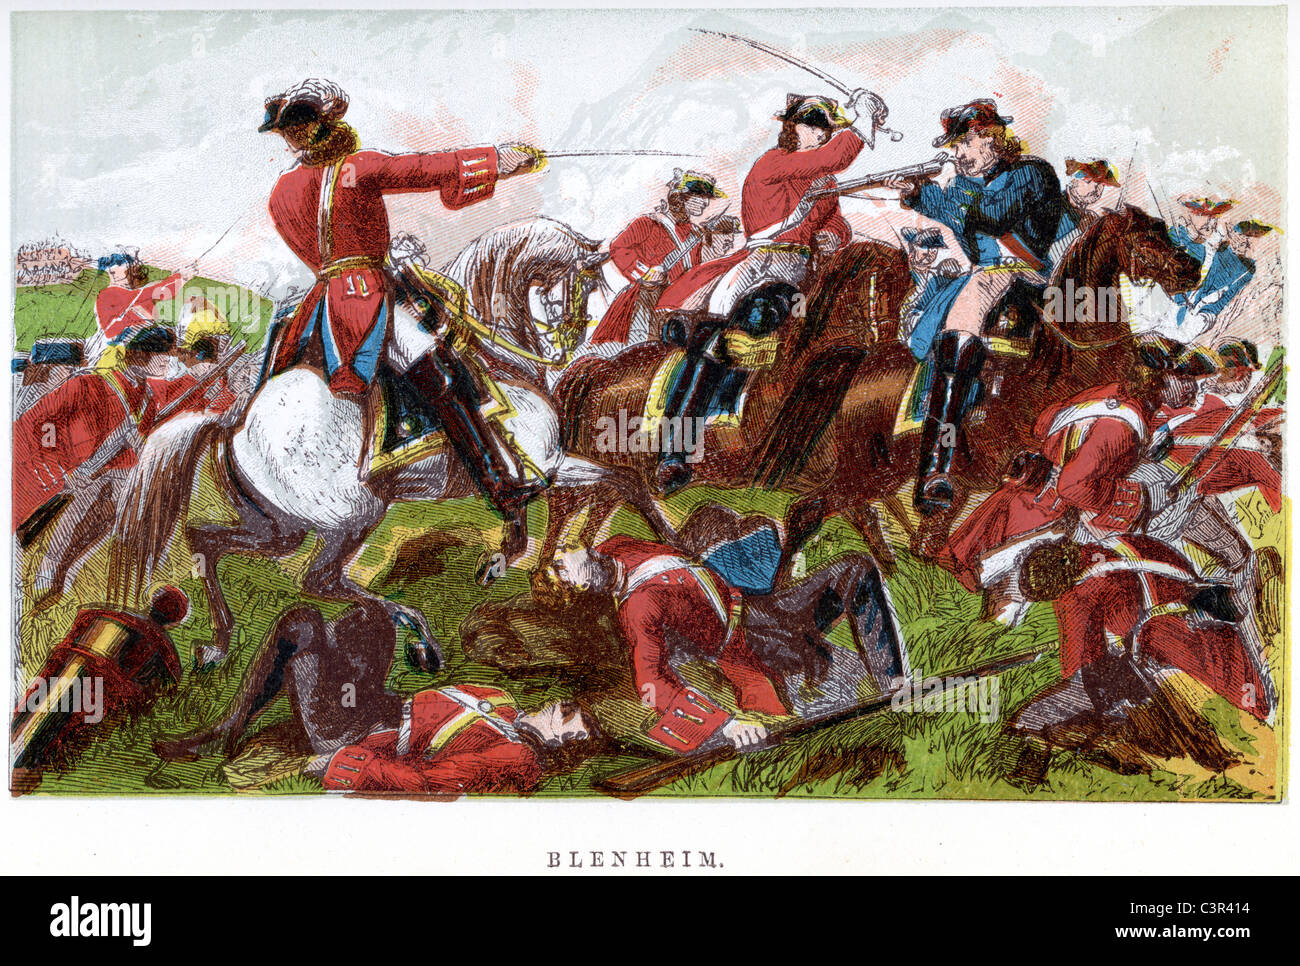 Battle of Blenheim, fought on 13 August 1704, was a major battle of the War of the Spanish Succession. Stock Photo